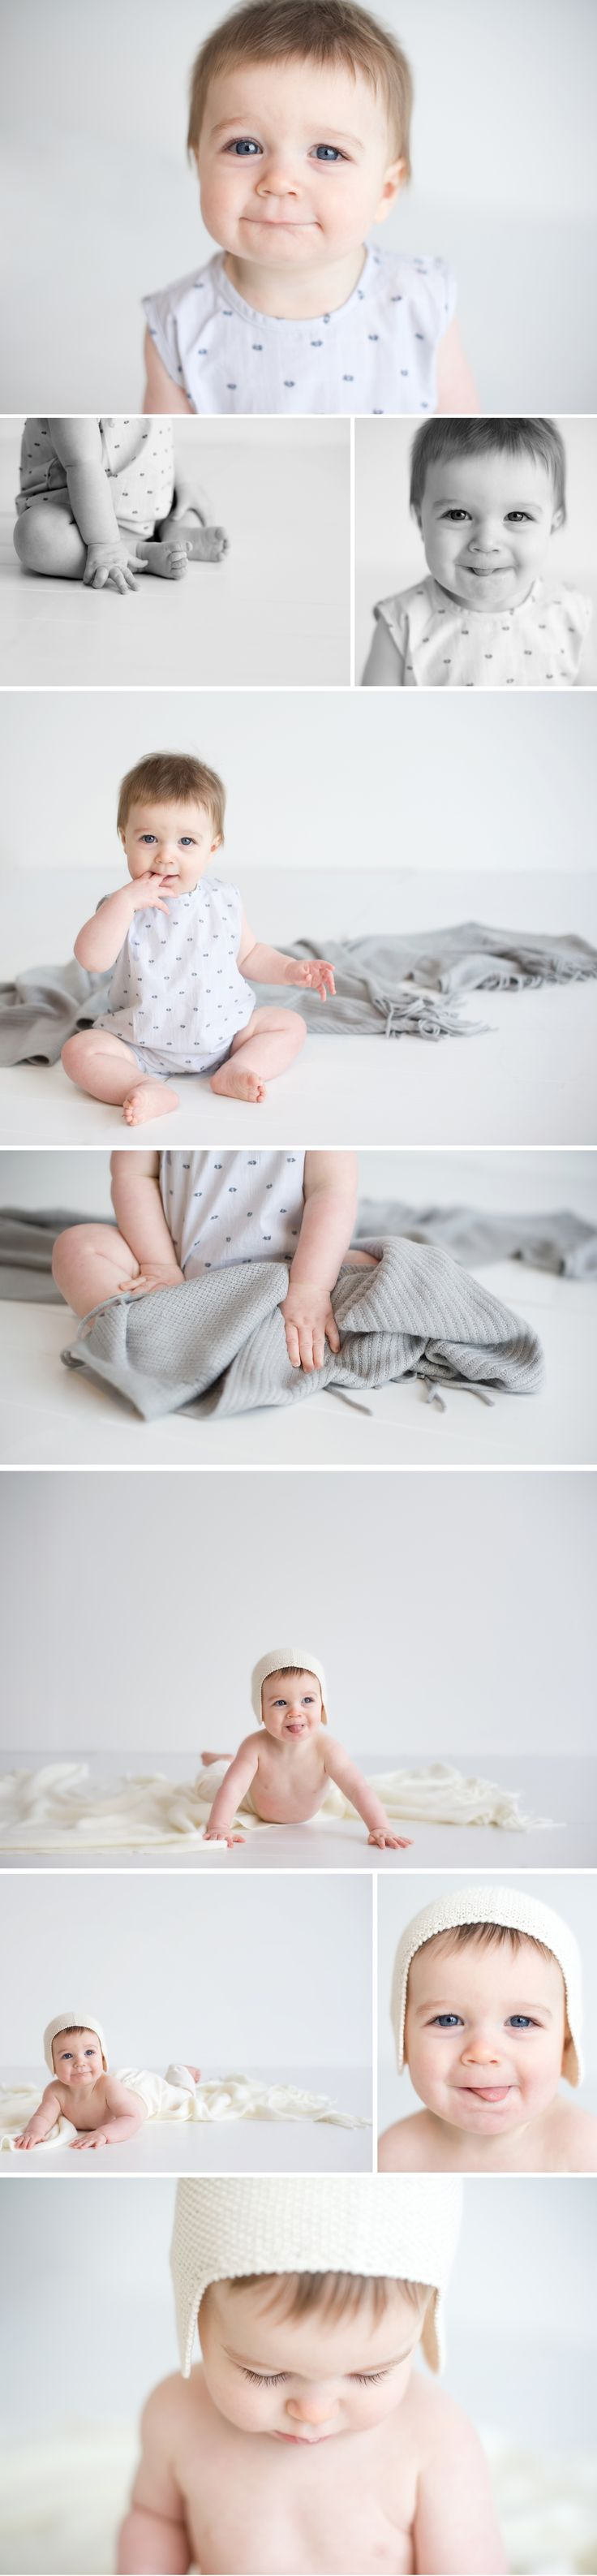 White floors, gray accents = Simple & soft  Lane Proffitt | nashvillebabyphotographer